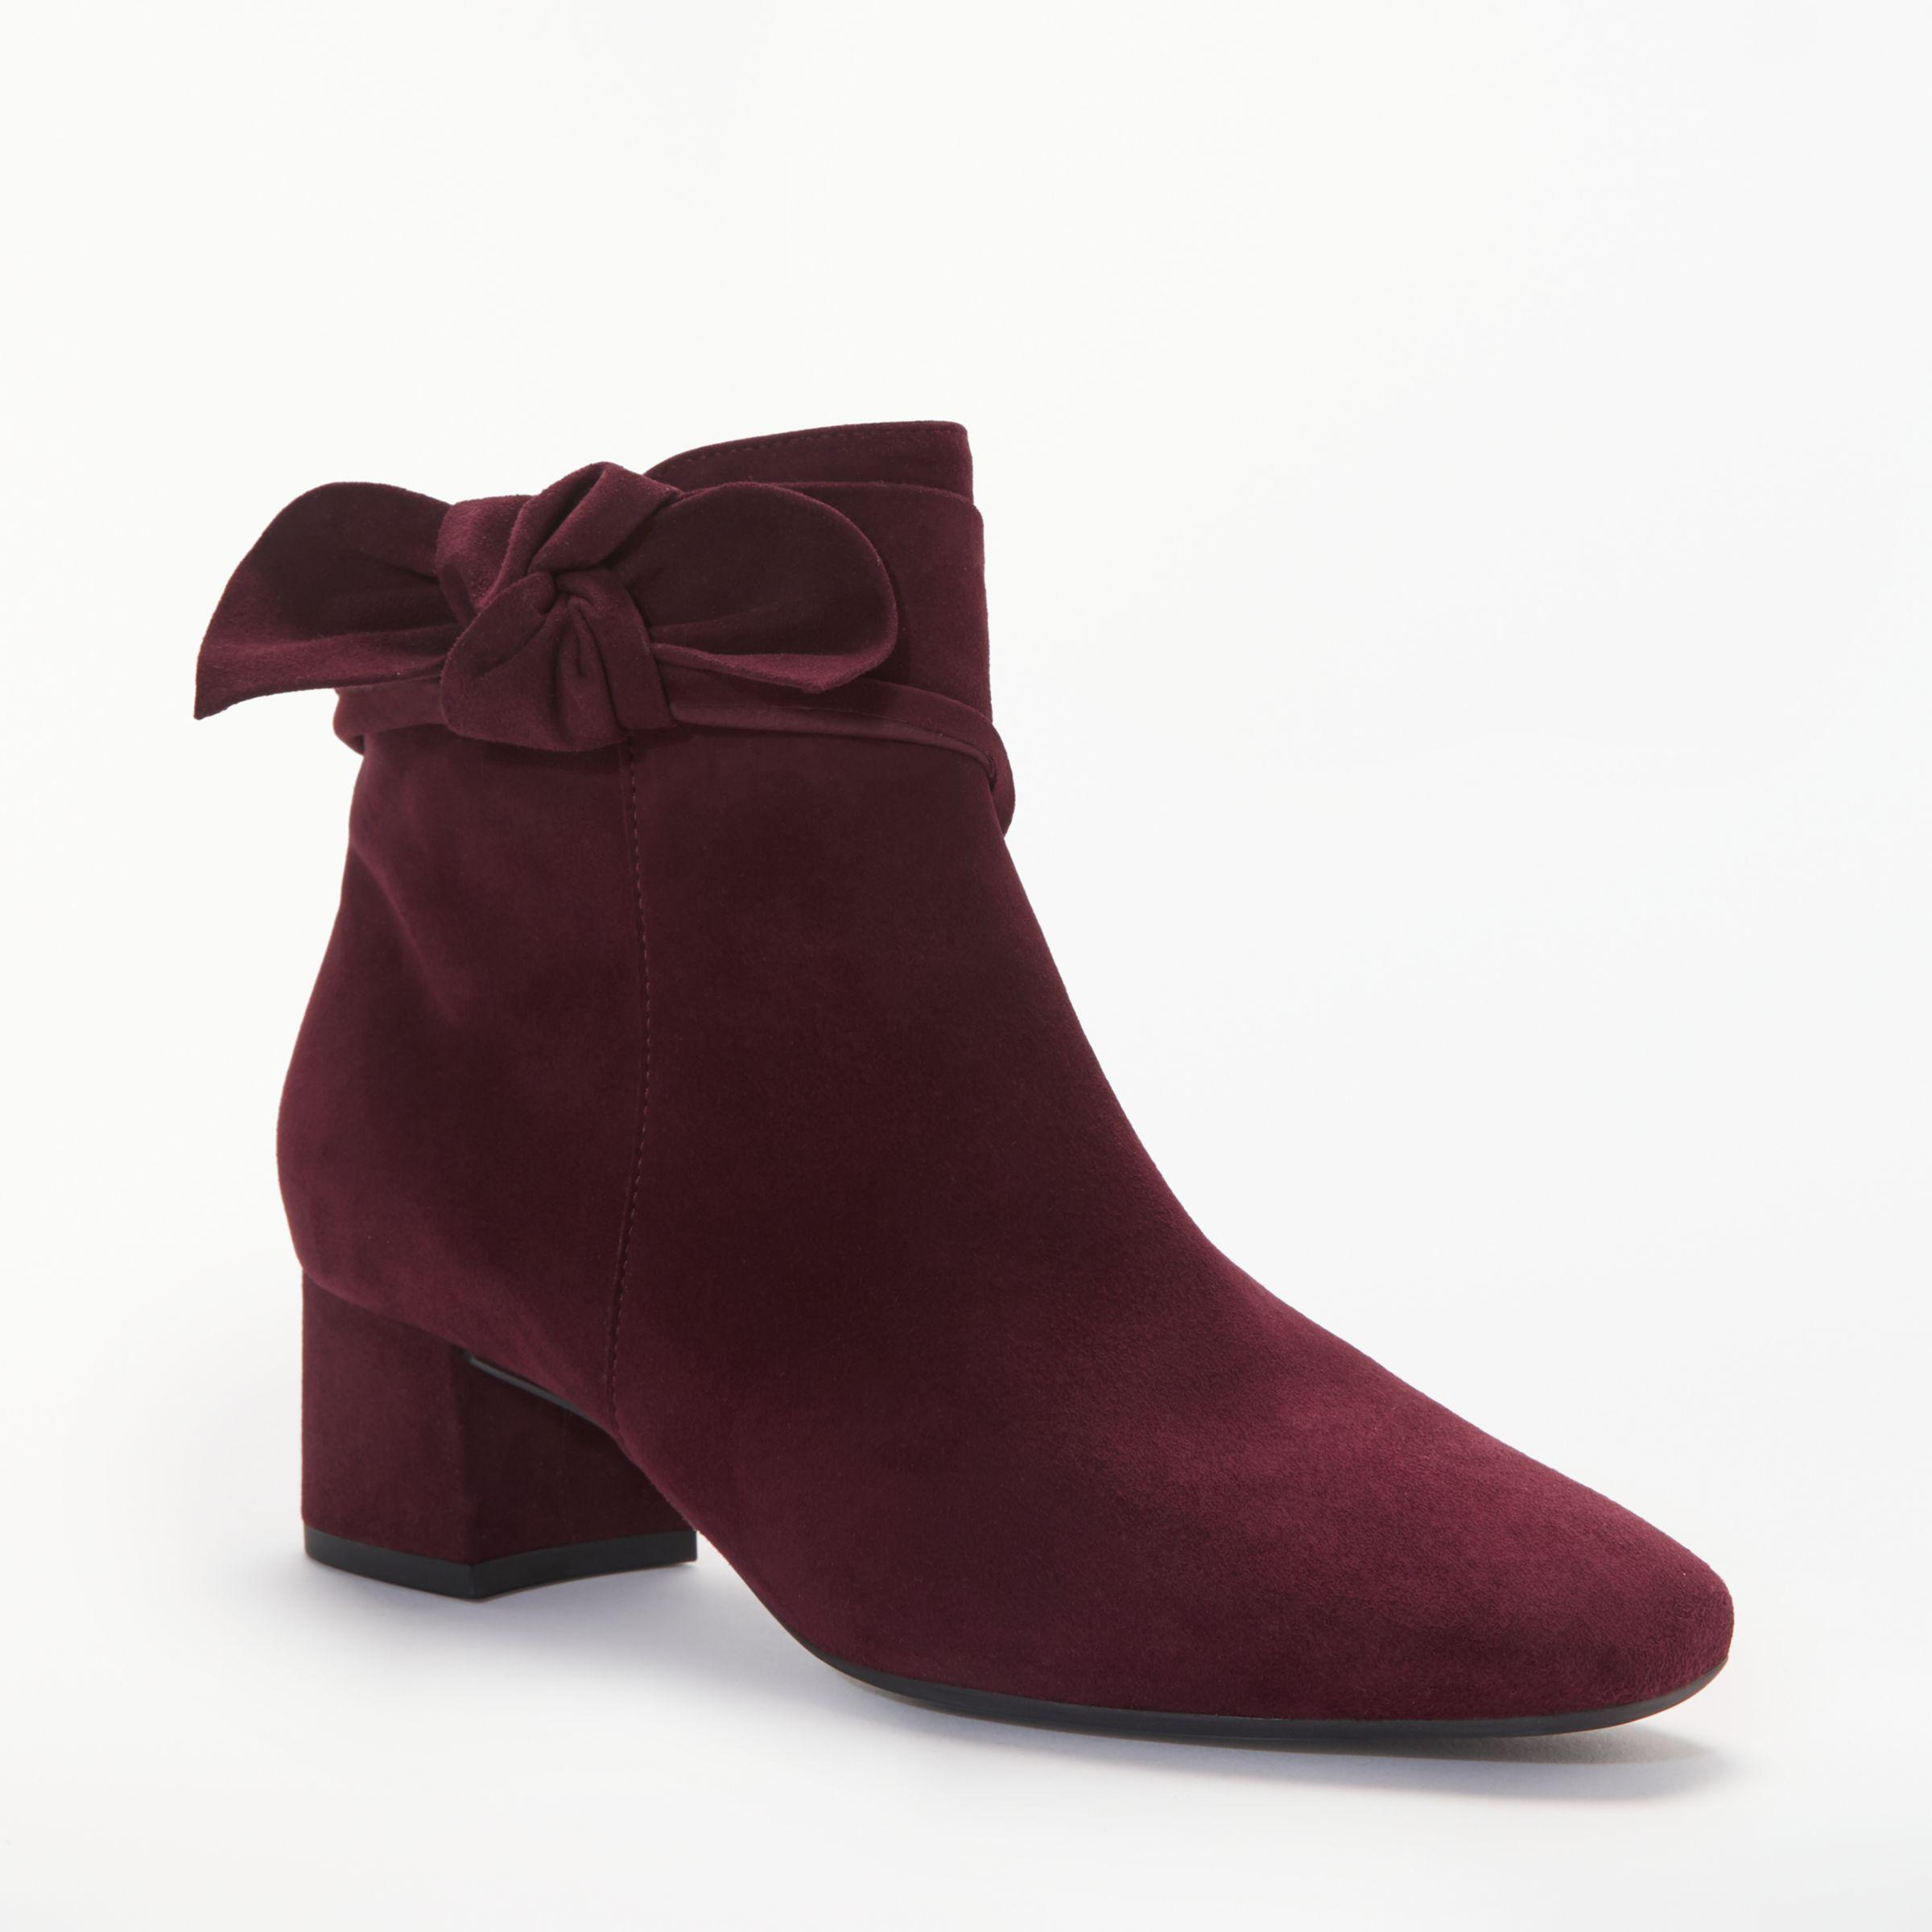 cc643402386 Peter Kaiser Tamina Bow Tie Block Heeled Ankle Boots in Red - Lyst